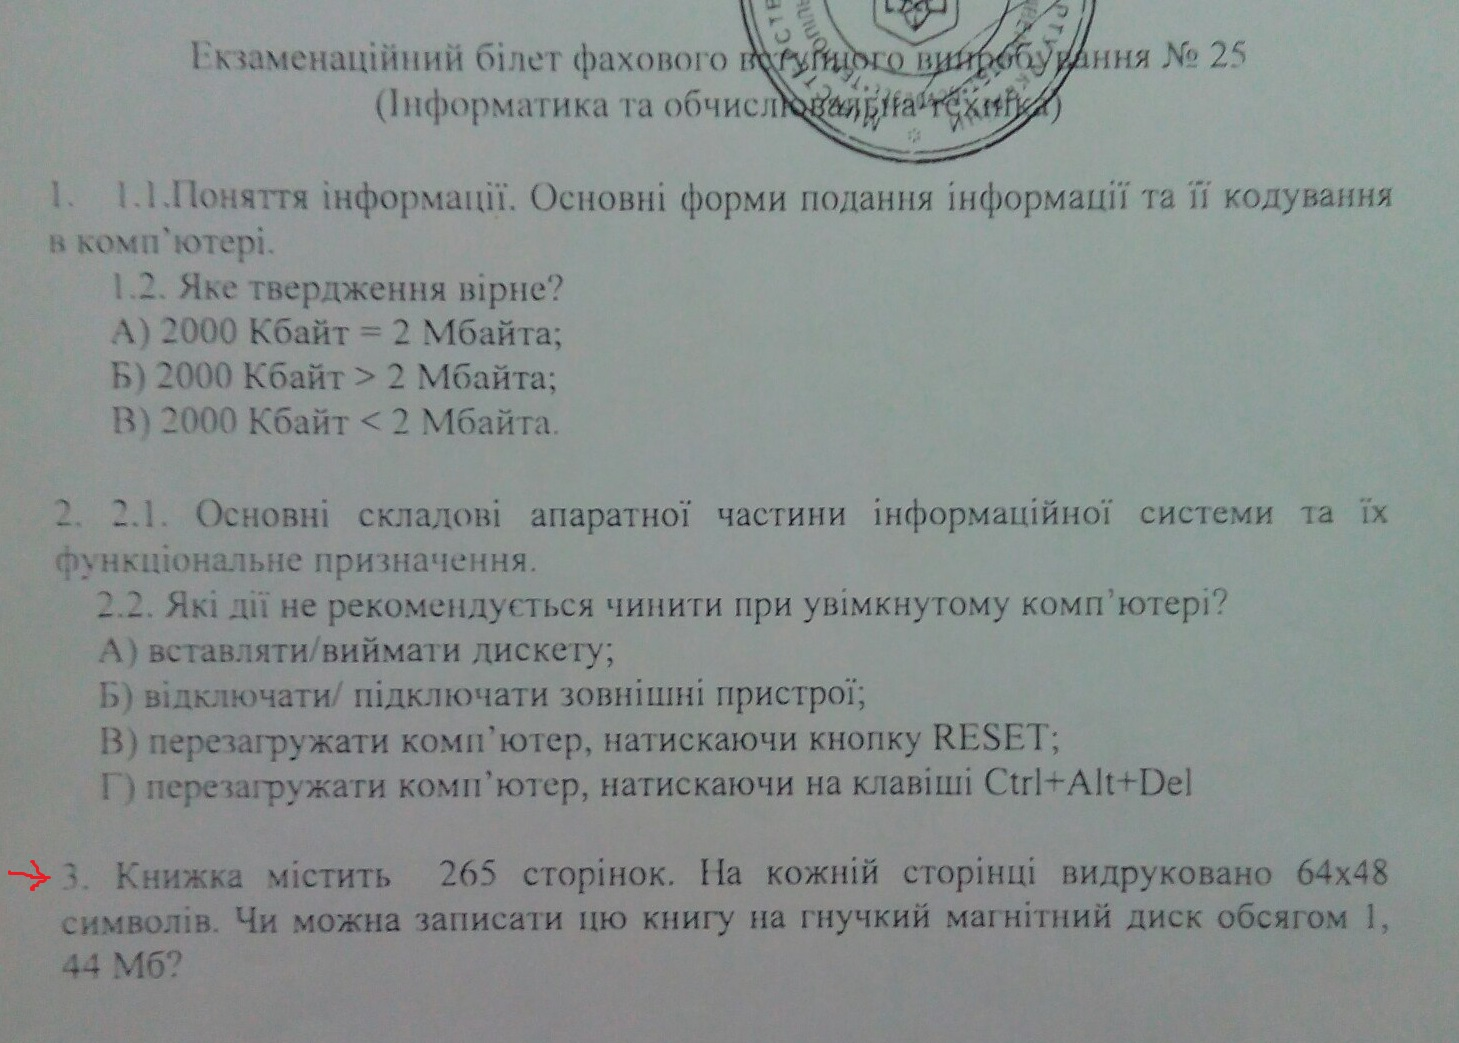 http://replace.org.ua/misc.php?action=pun_attachment&item=1049&download=0